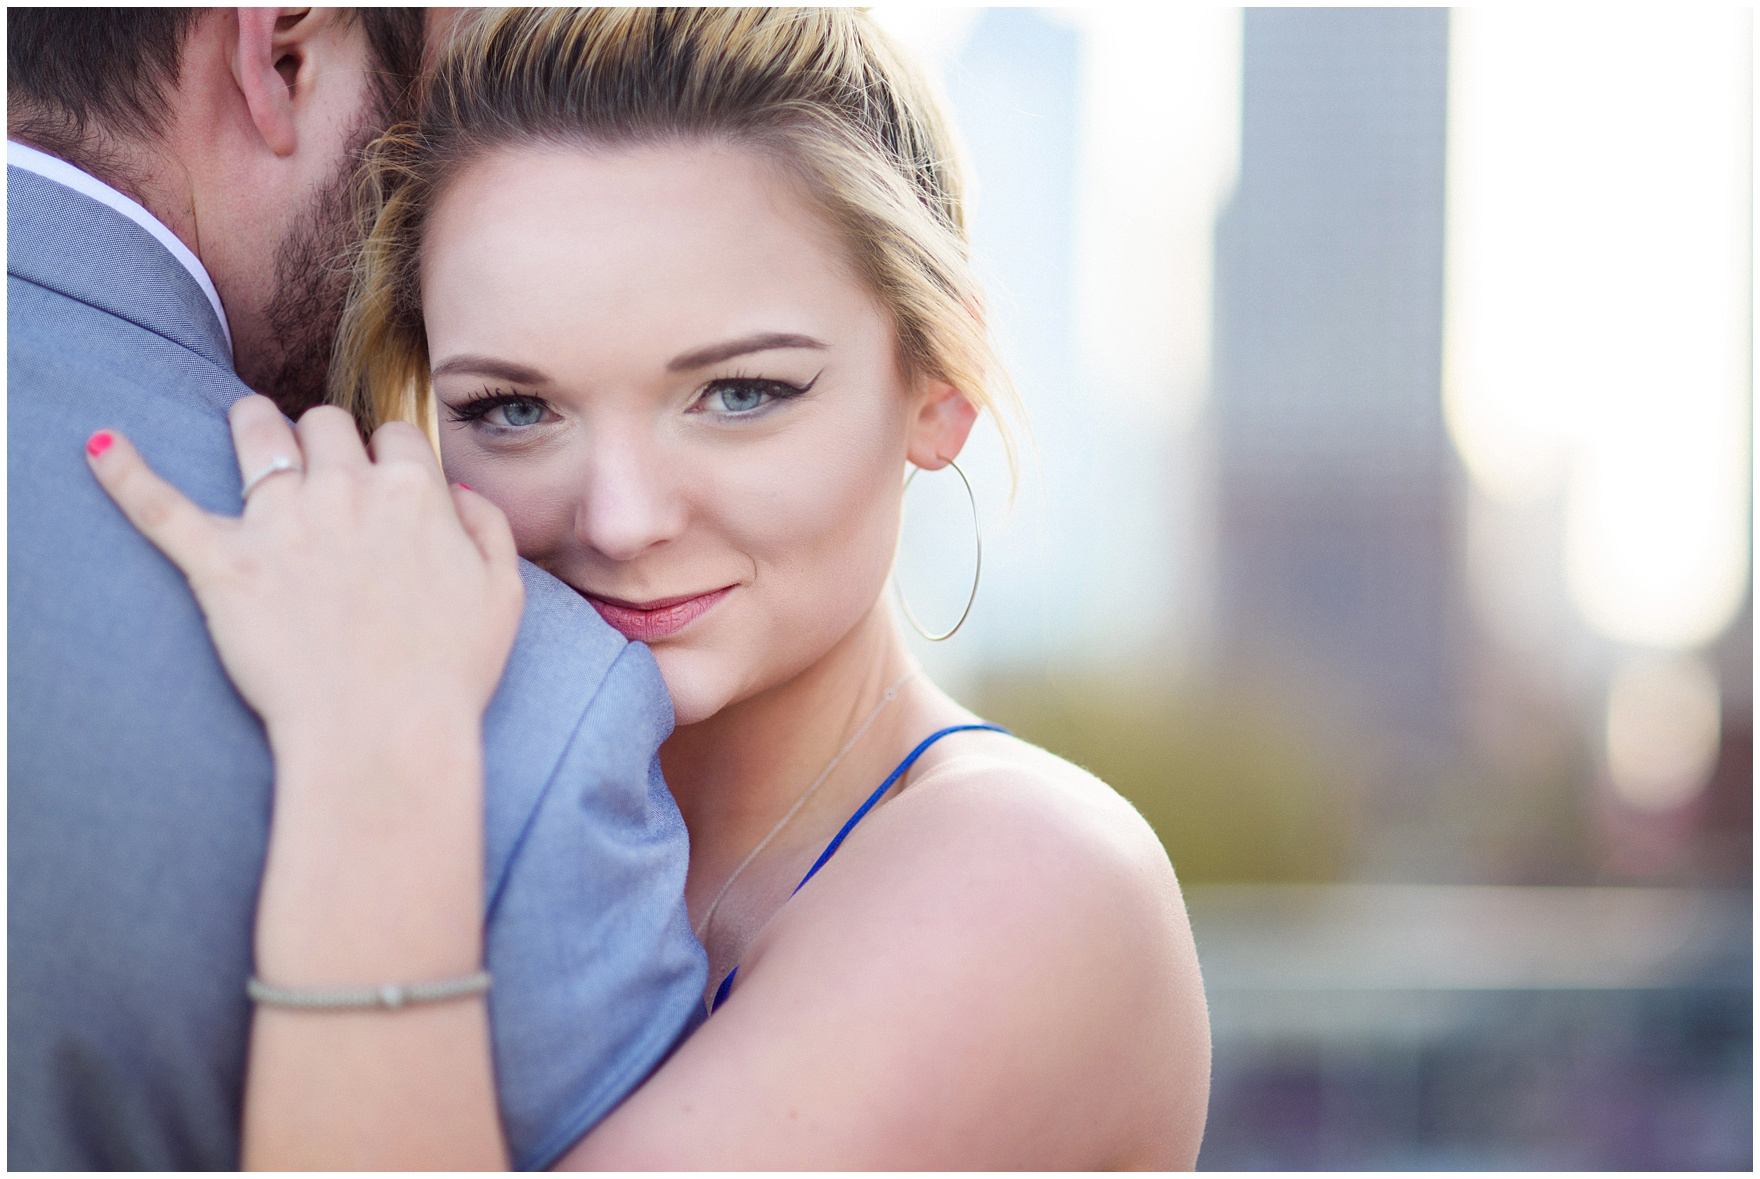 A newly-engaged woman hugs her fiance during a Chicago Navy Pier engagement photography session.